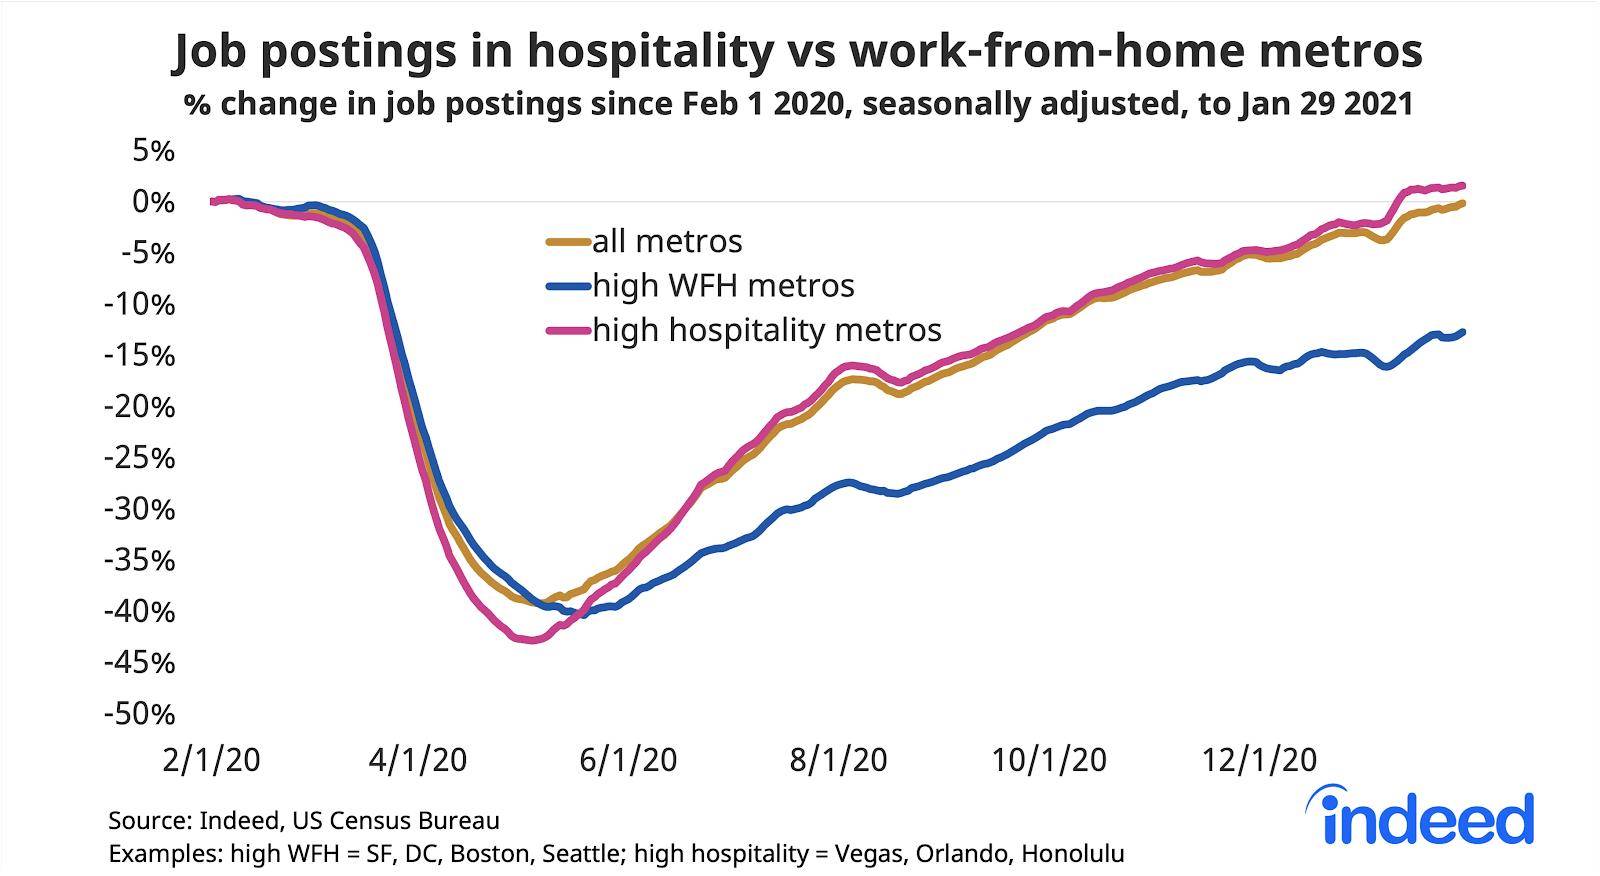 Line graph showing job postings in hospitality vs work from home metros